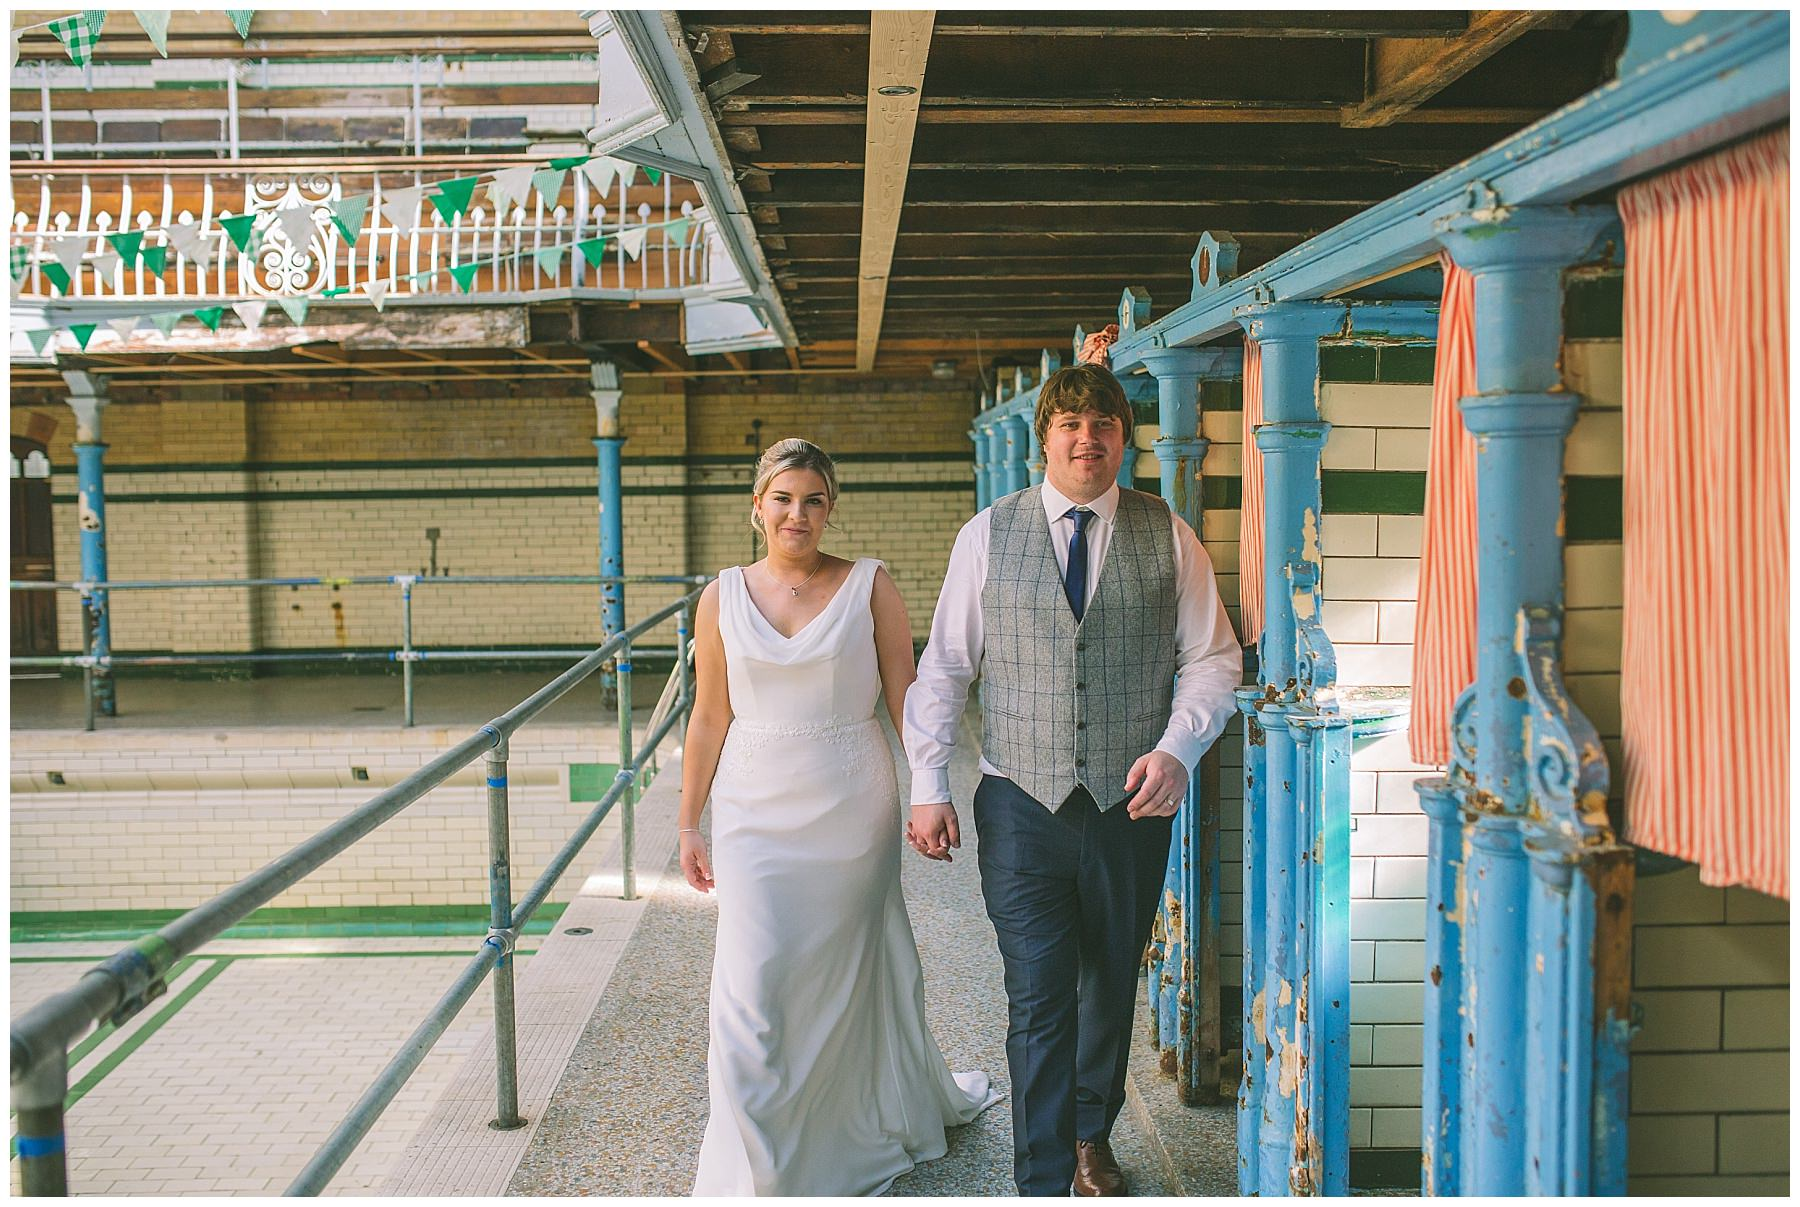 Bride and Groom walk down the poolside at Victoria Baths